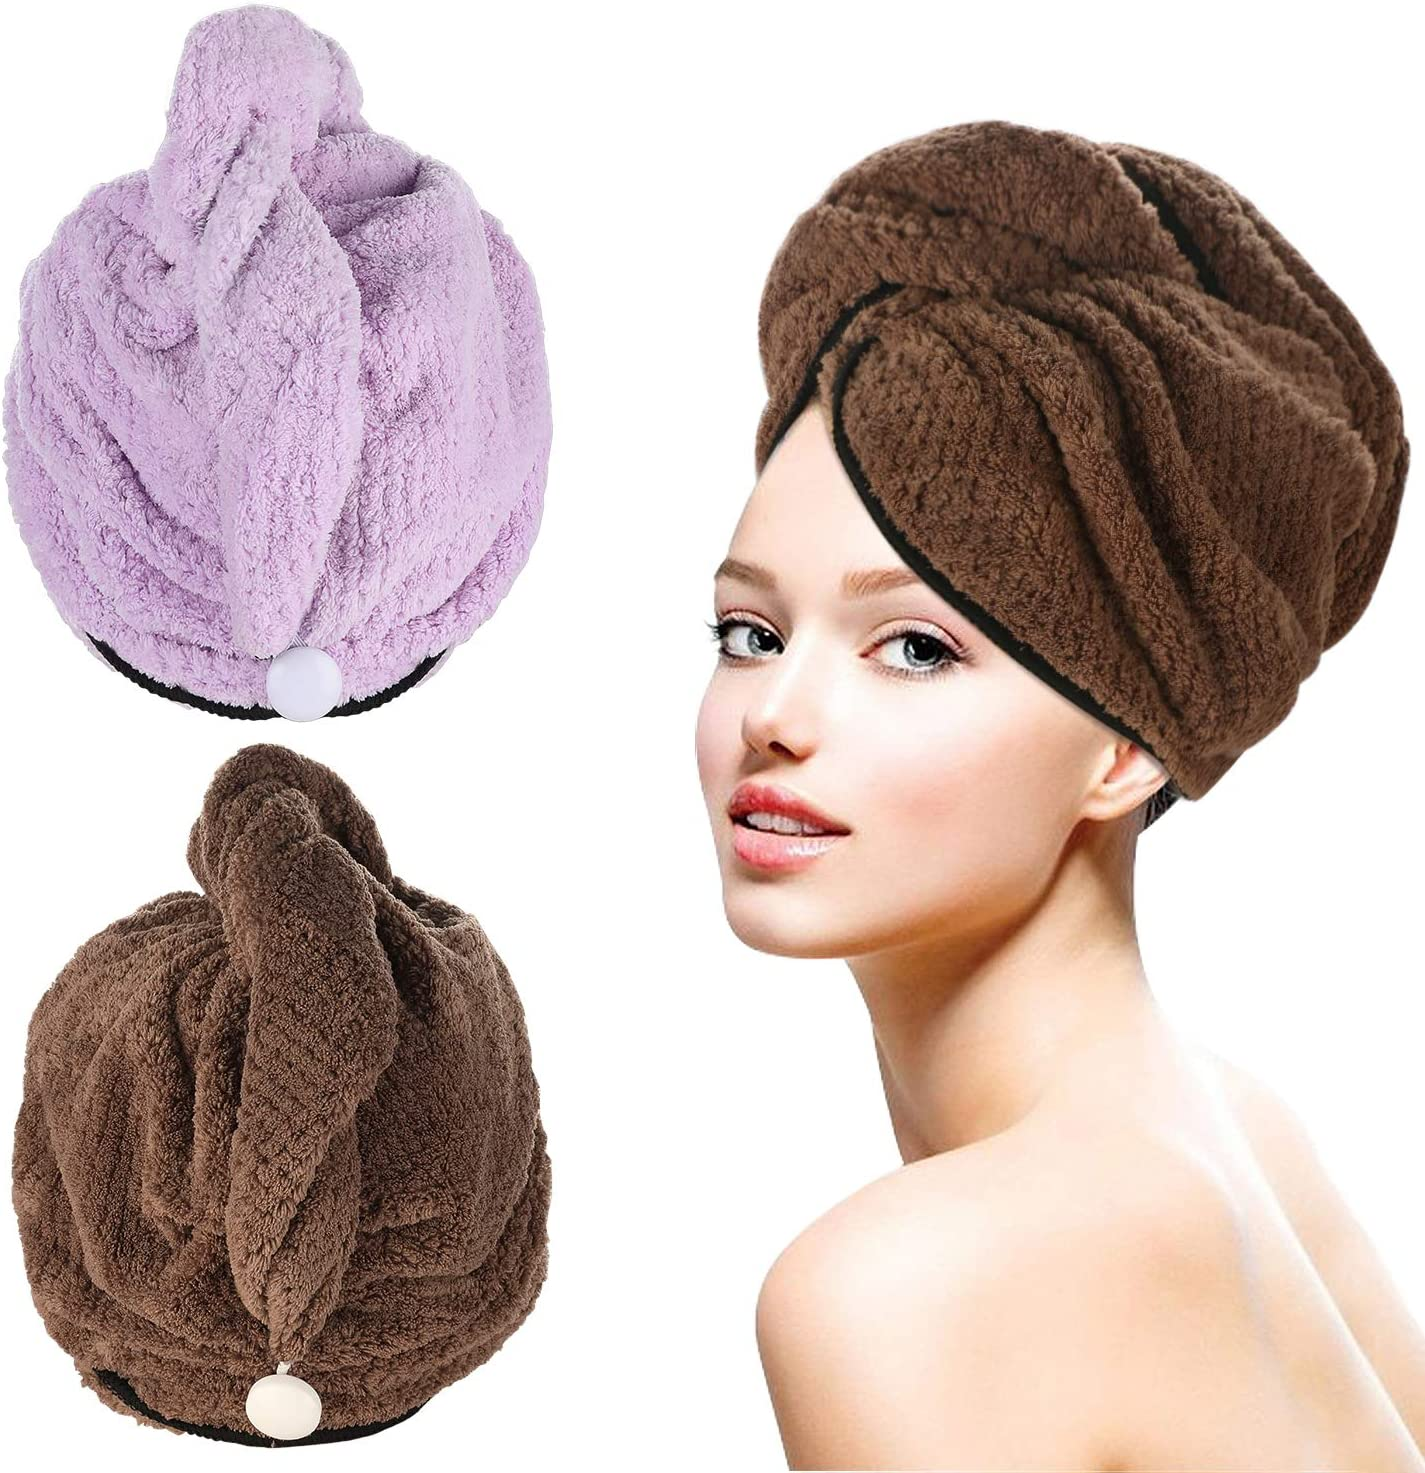 Tencoz 2Pack Towel Turbans with Superfine Fiber Soft Microfiber Ultra Absorbent Dry Hair Cap – Brown and Purple DOWN TO £5.99 w/code TU52WZPS @ Amazon